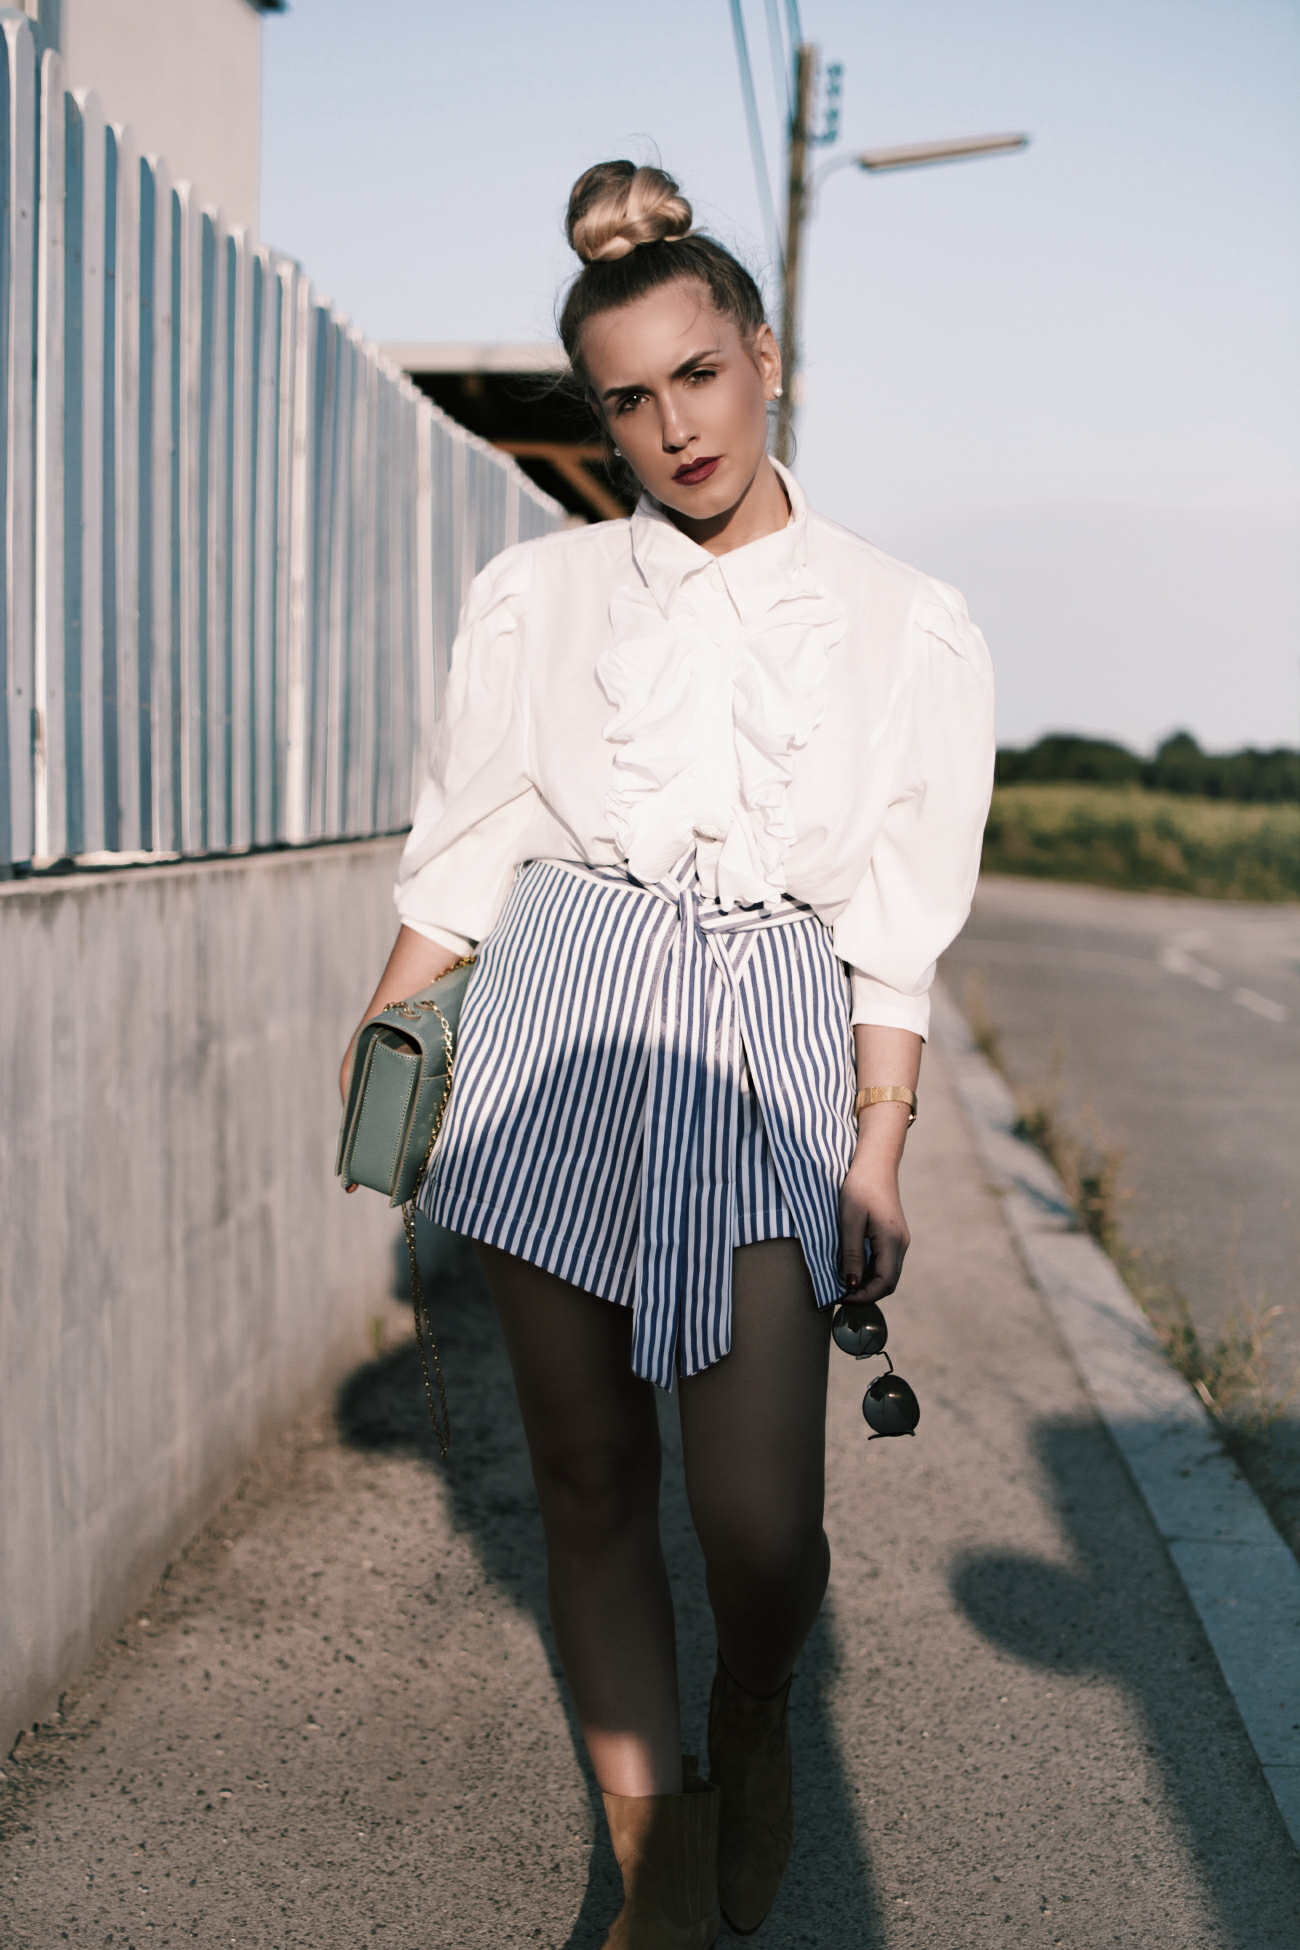 Outfit inspiration: 80s Ruffled blouse & striped skirt via @fleurdemode